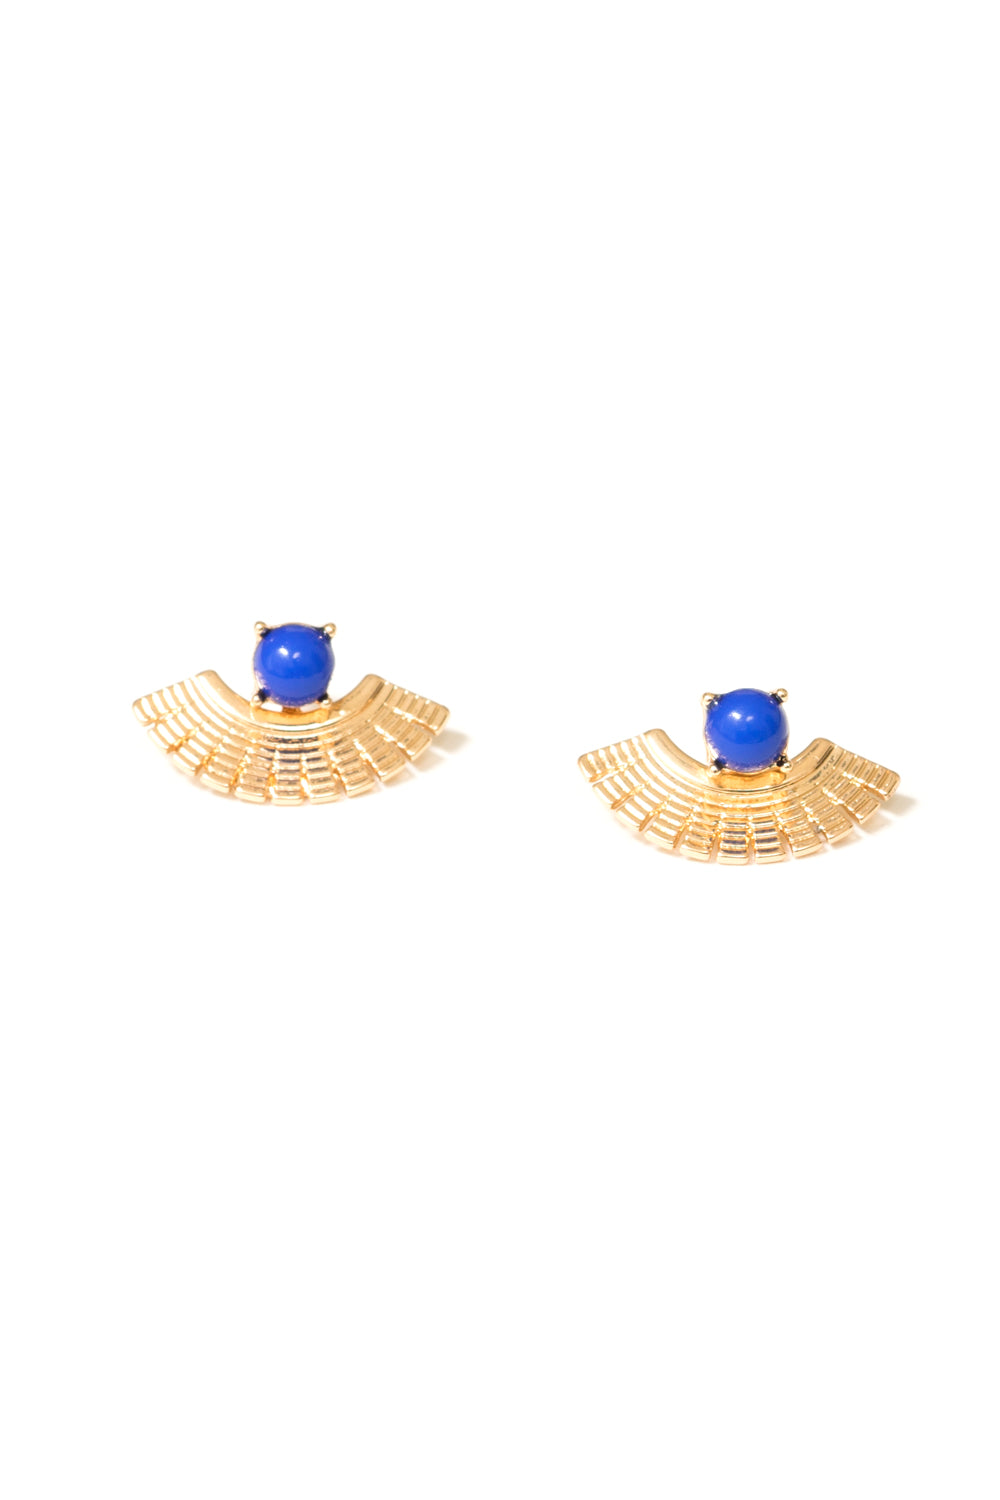 Zahra | Earring Jacket | 18k Gold Plating | Janna Conner